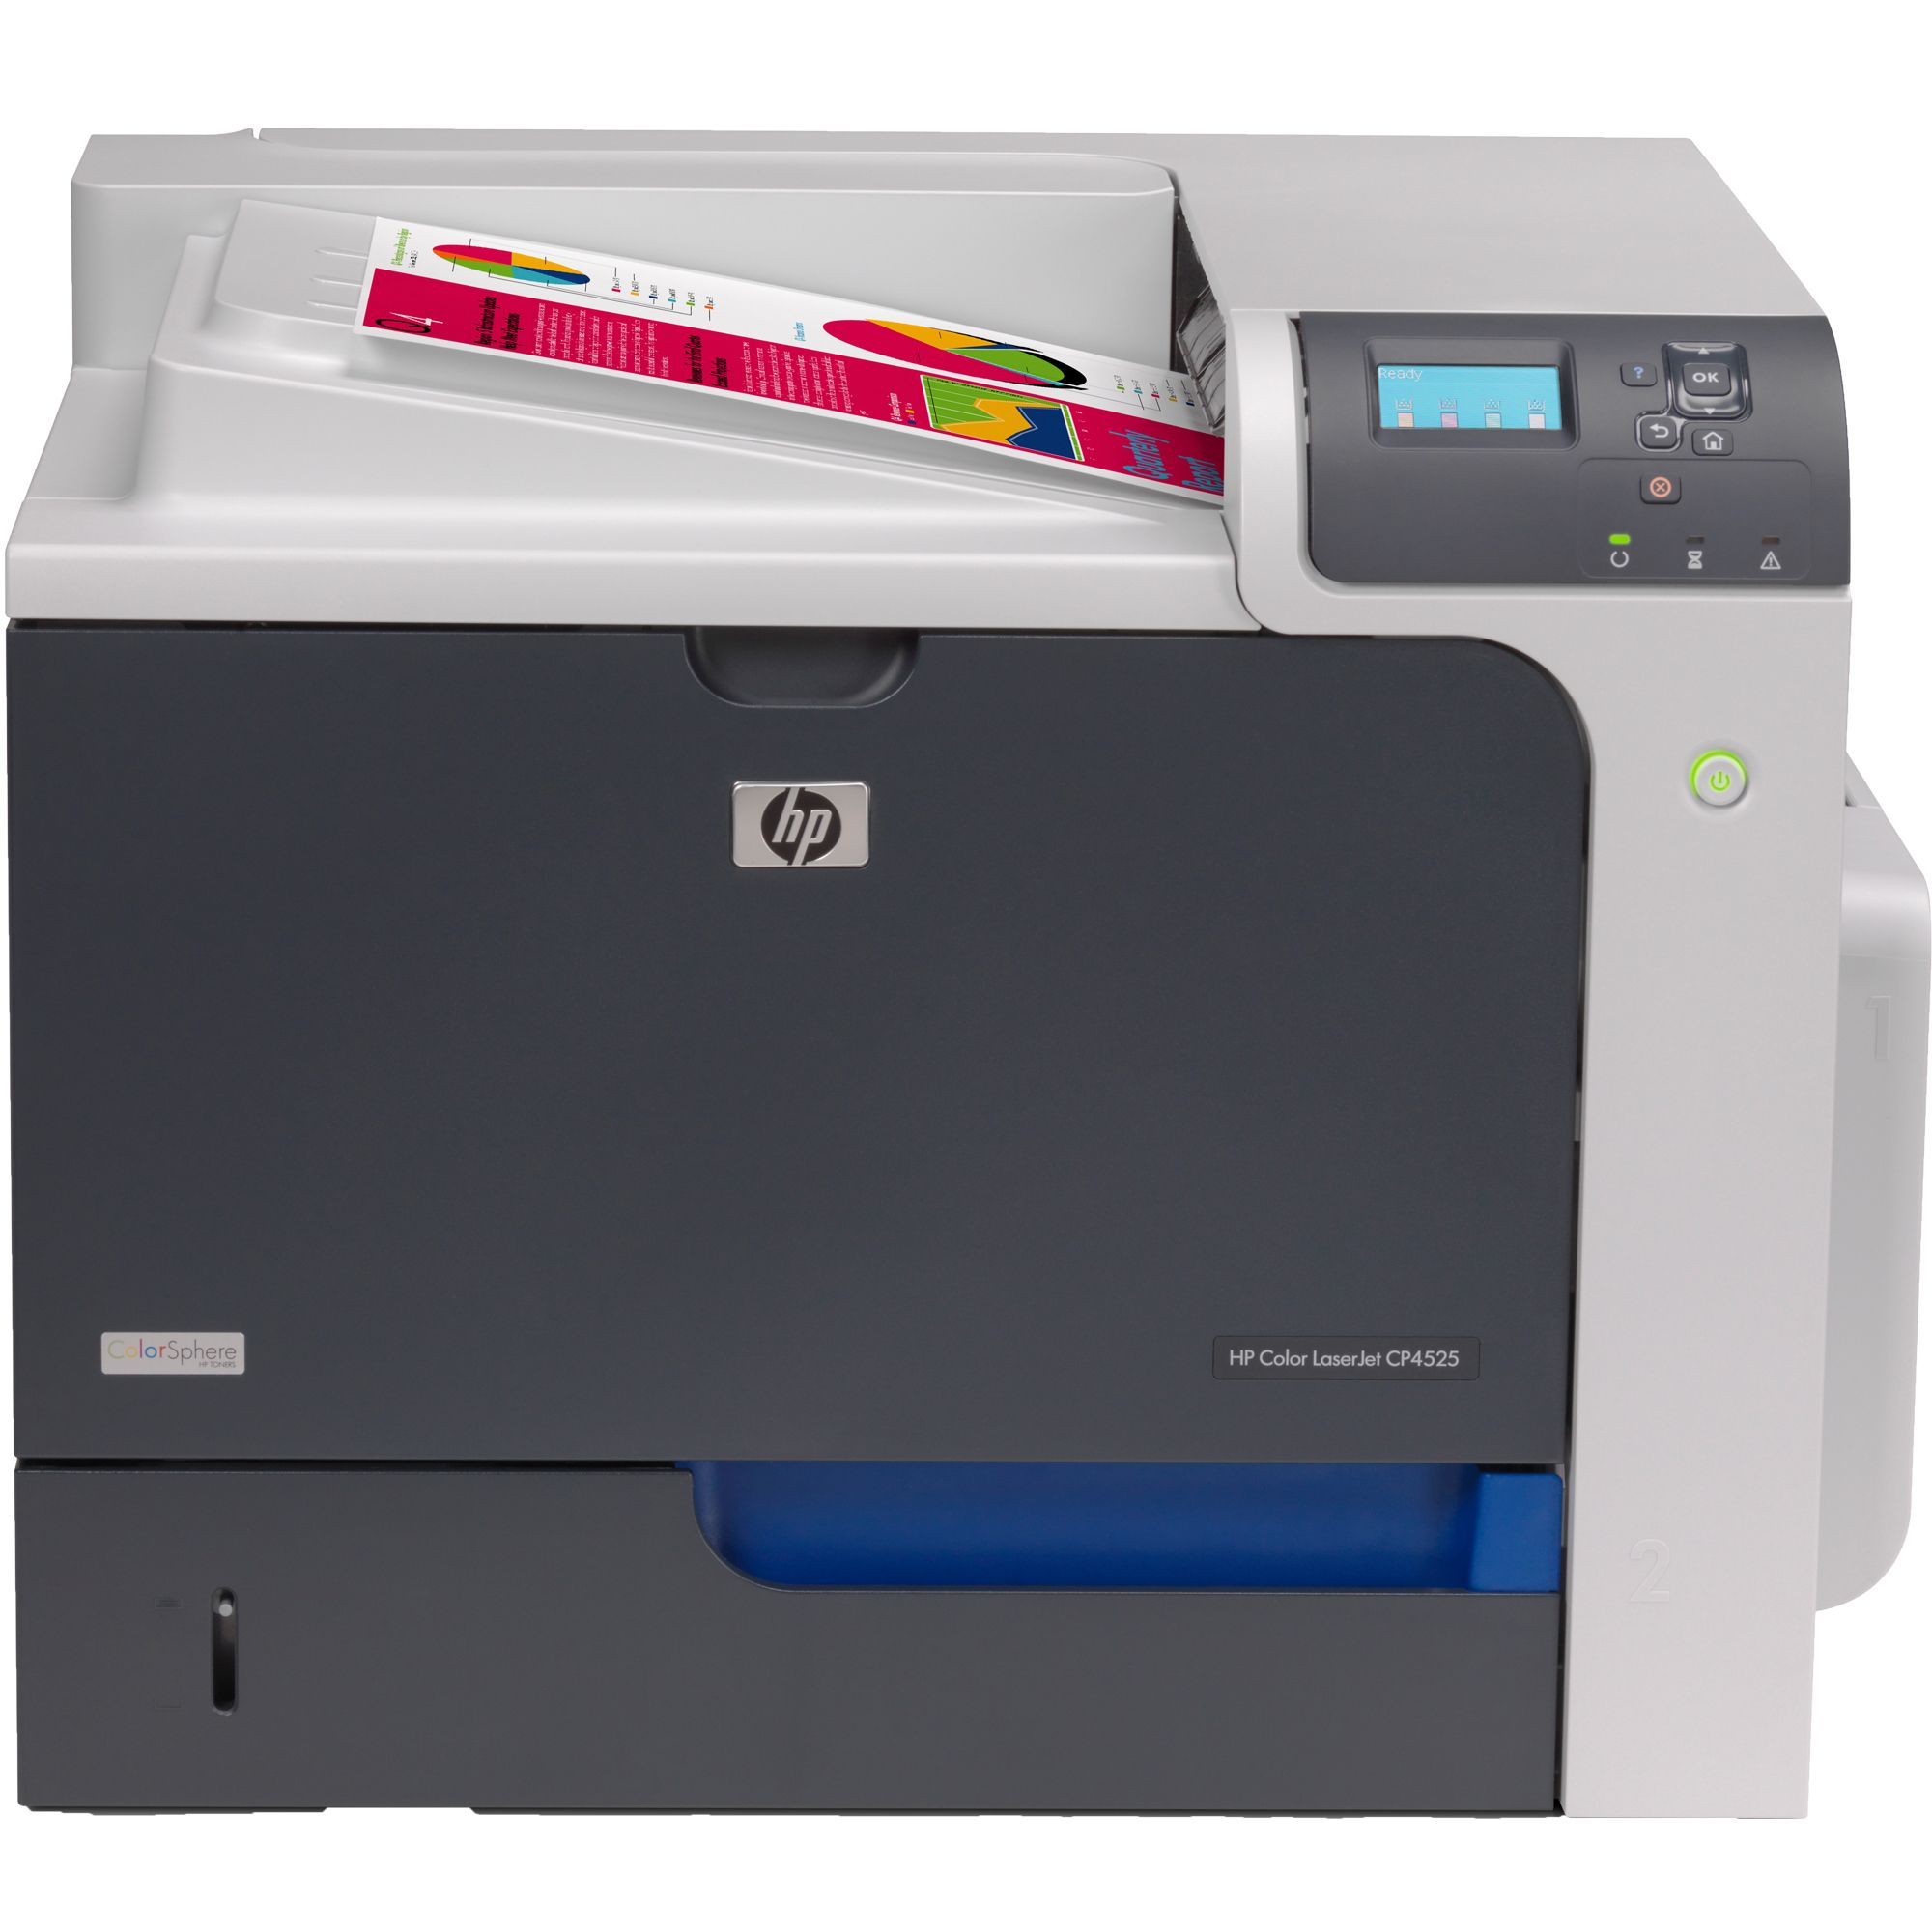 imprimanta laser color hp cp4525dn, duplex, retea, usb, 42 ppm, toner low